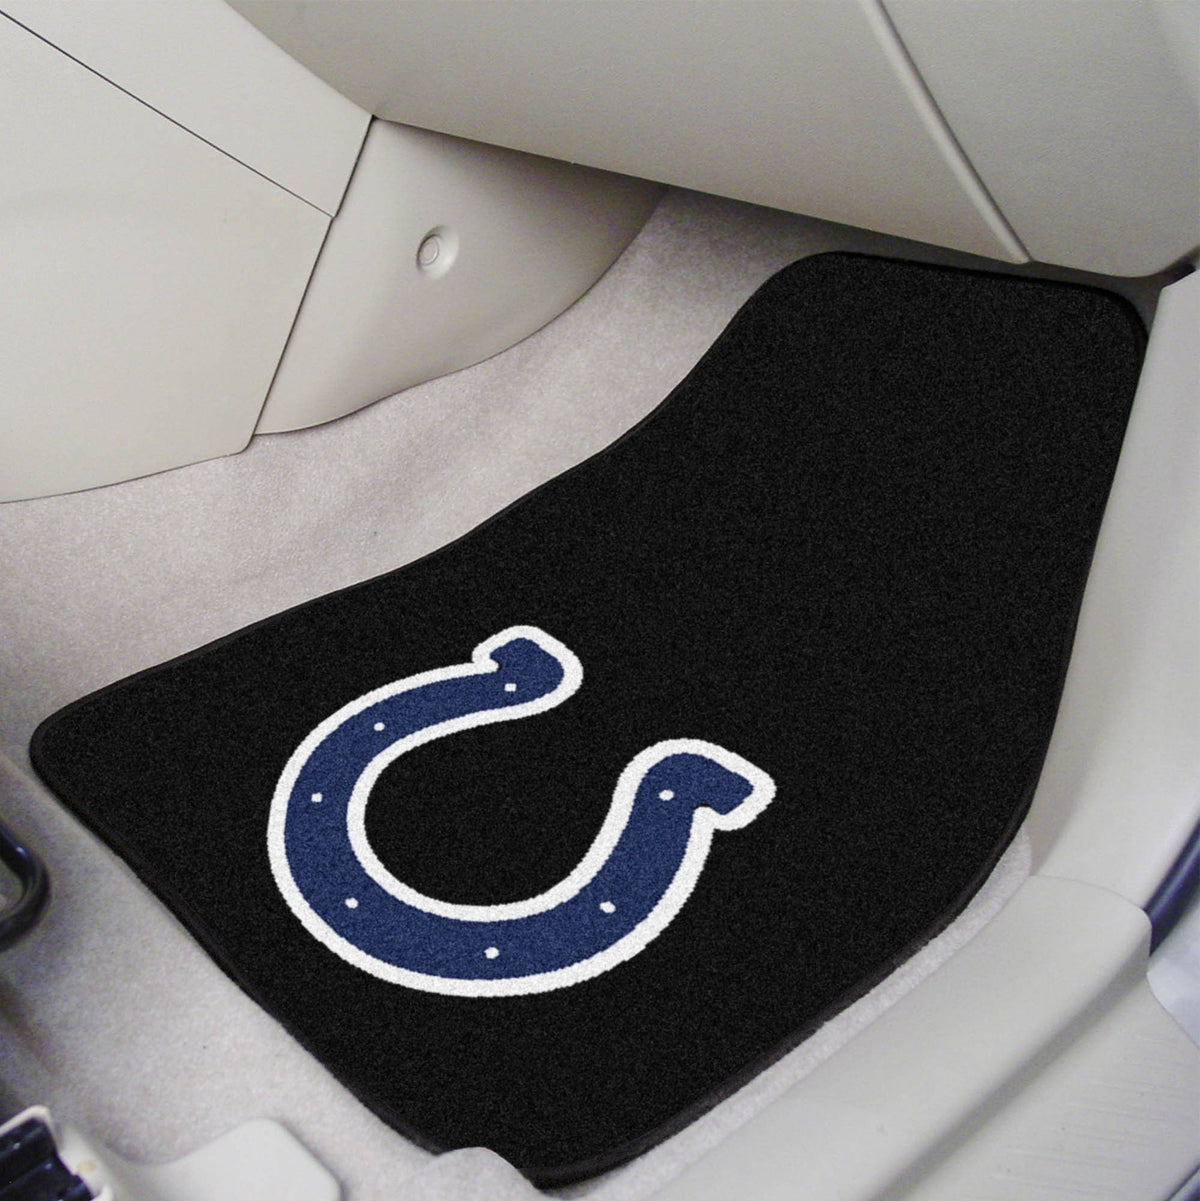 "NFL - 2-pc Carpet Car Mat Set, 17"" x 27"" NFL Mats, Front Car Mats, 2-pc Carpet Car Mat Set, NFL, Auto Fan Mats Indianapolis Colts"